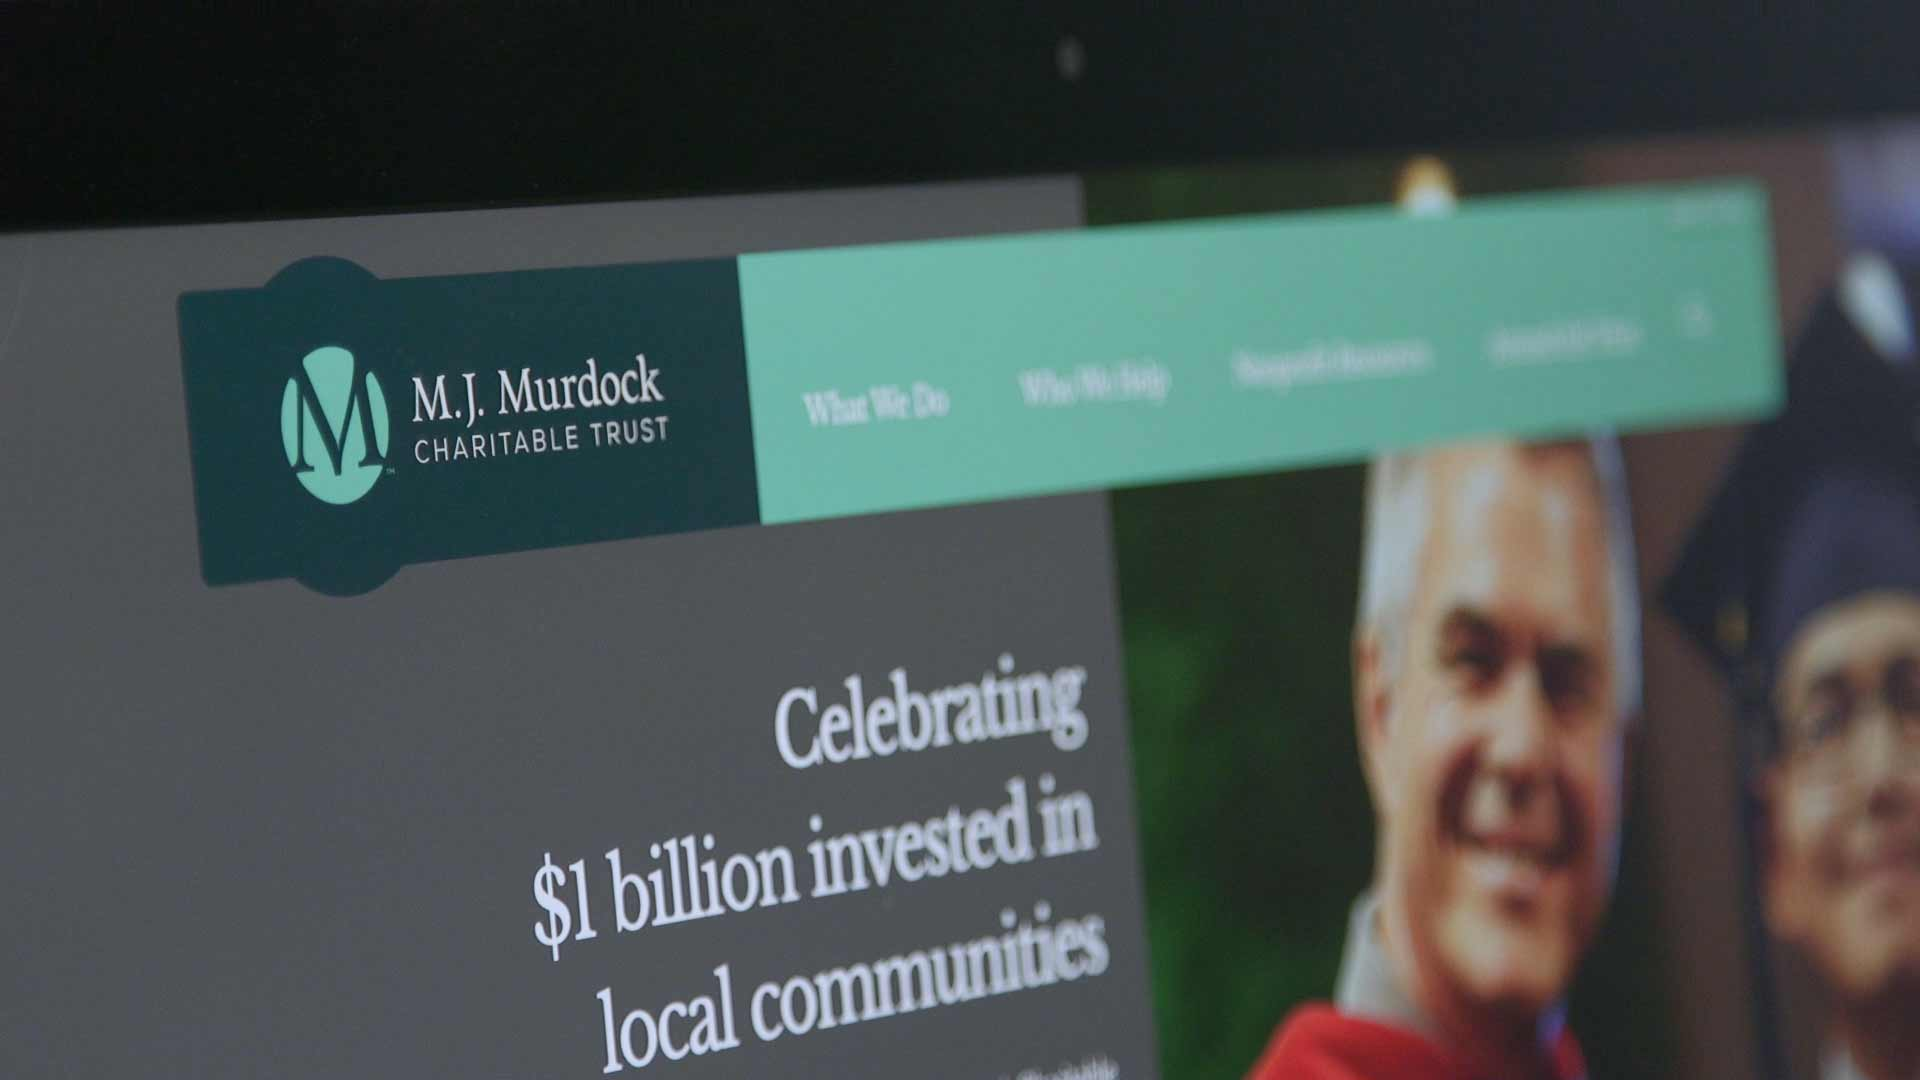 Photo of M.J. Murdock Charitable Trust website on desktop screen